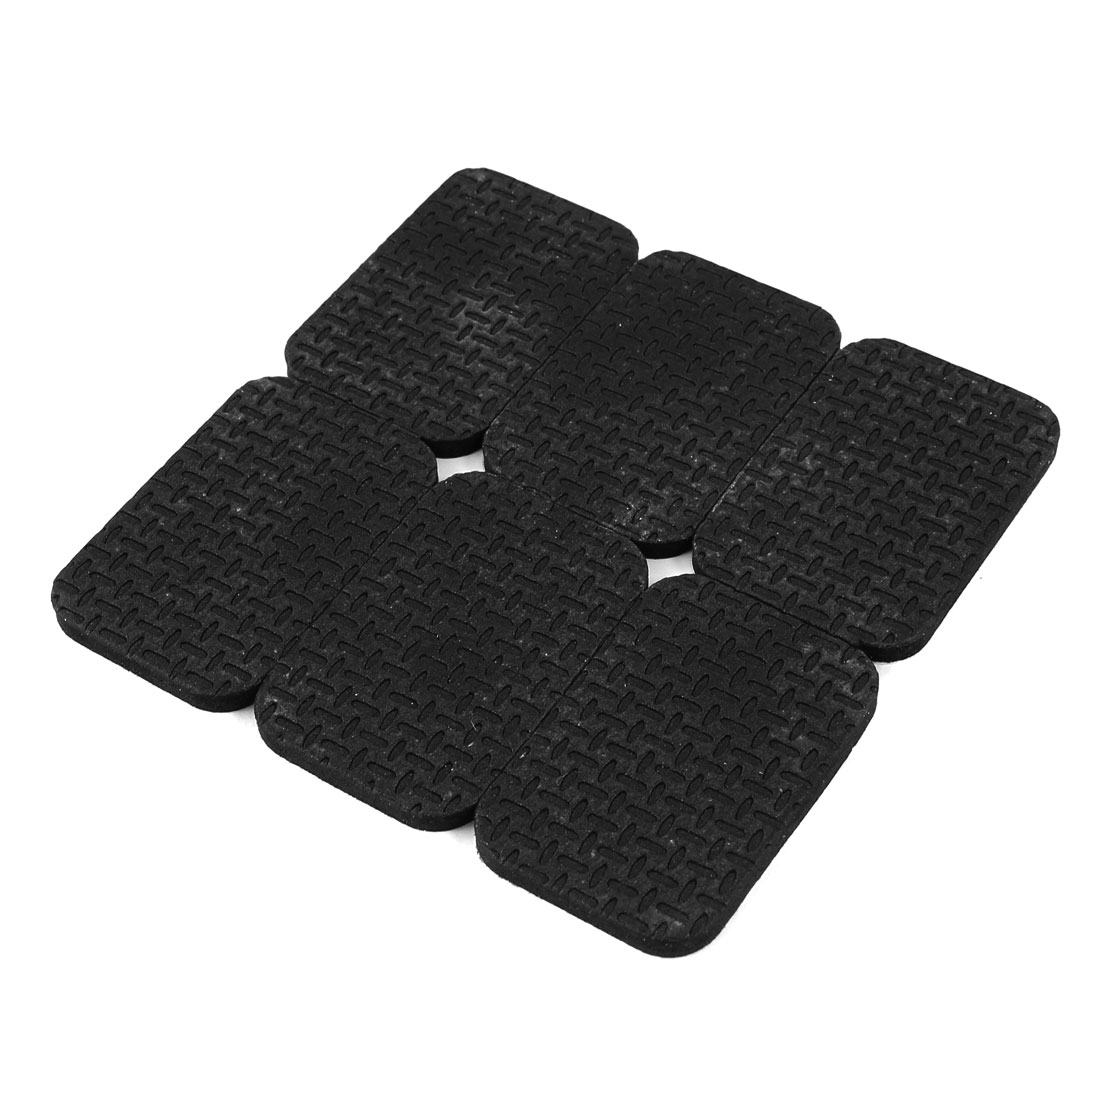 Unique Bargains 6 Pcs Rubber Rectangle 30mm x 45mm Adhesive Chair Foot Cover Table Furniture Leg Protector Balck